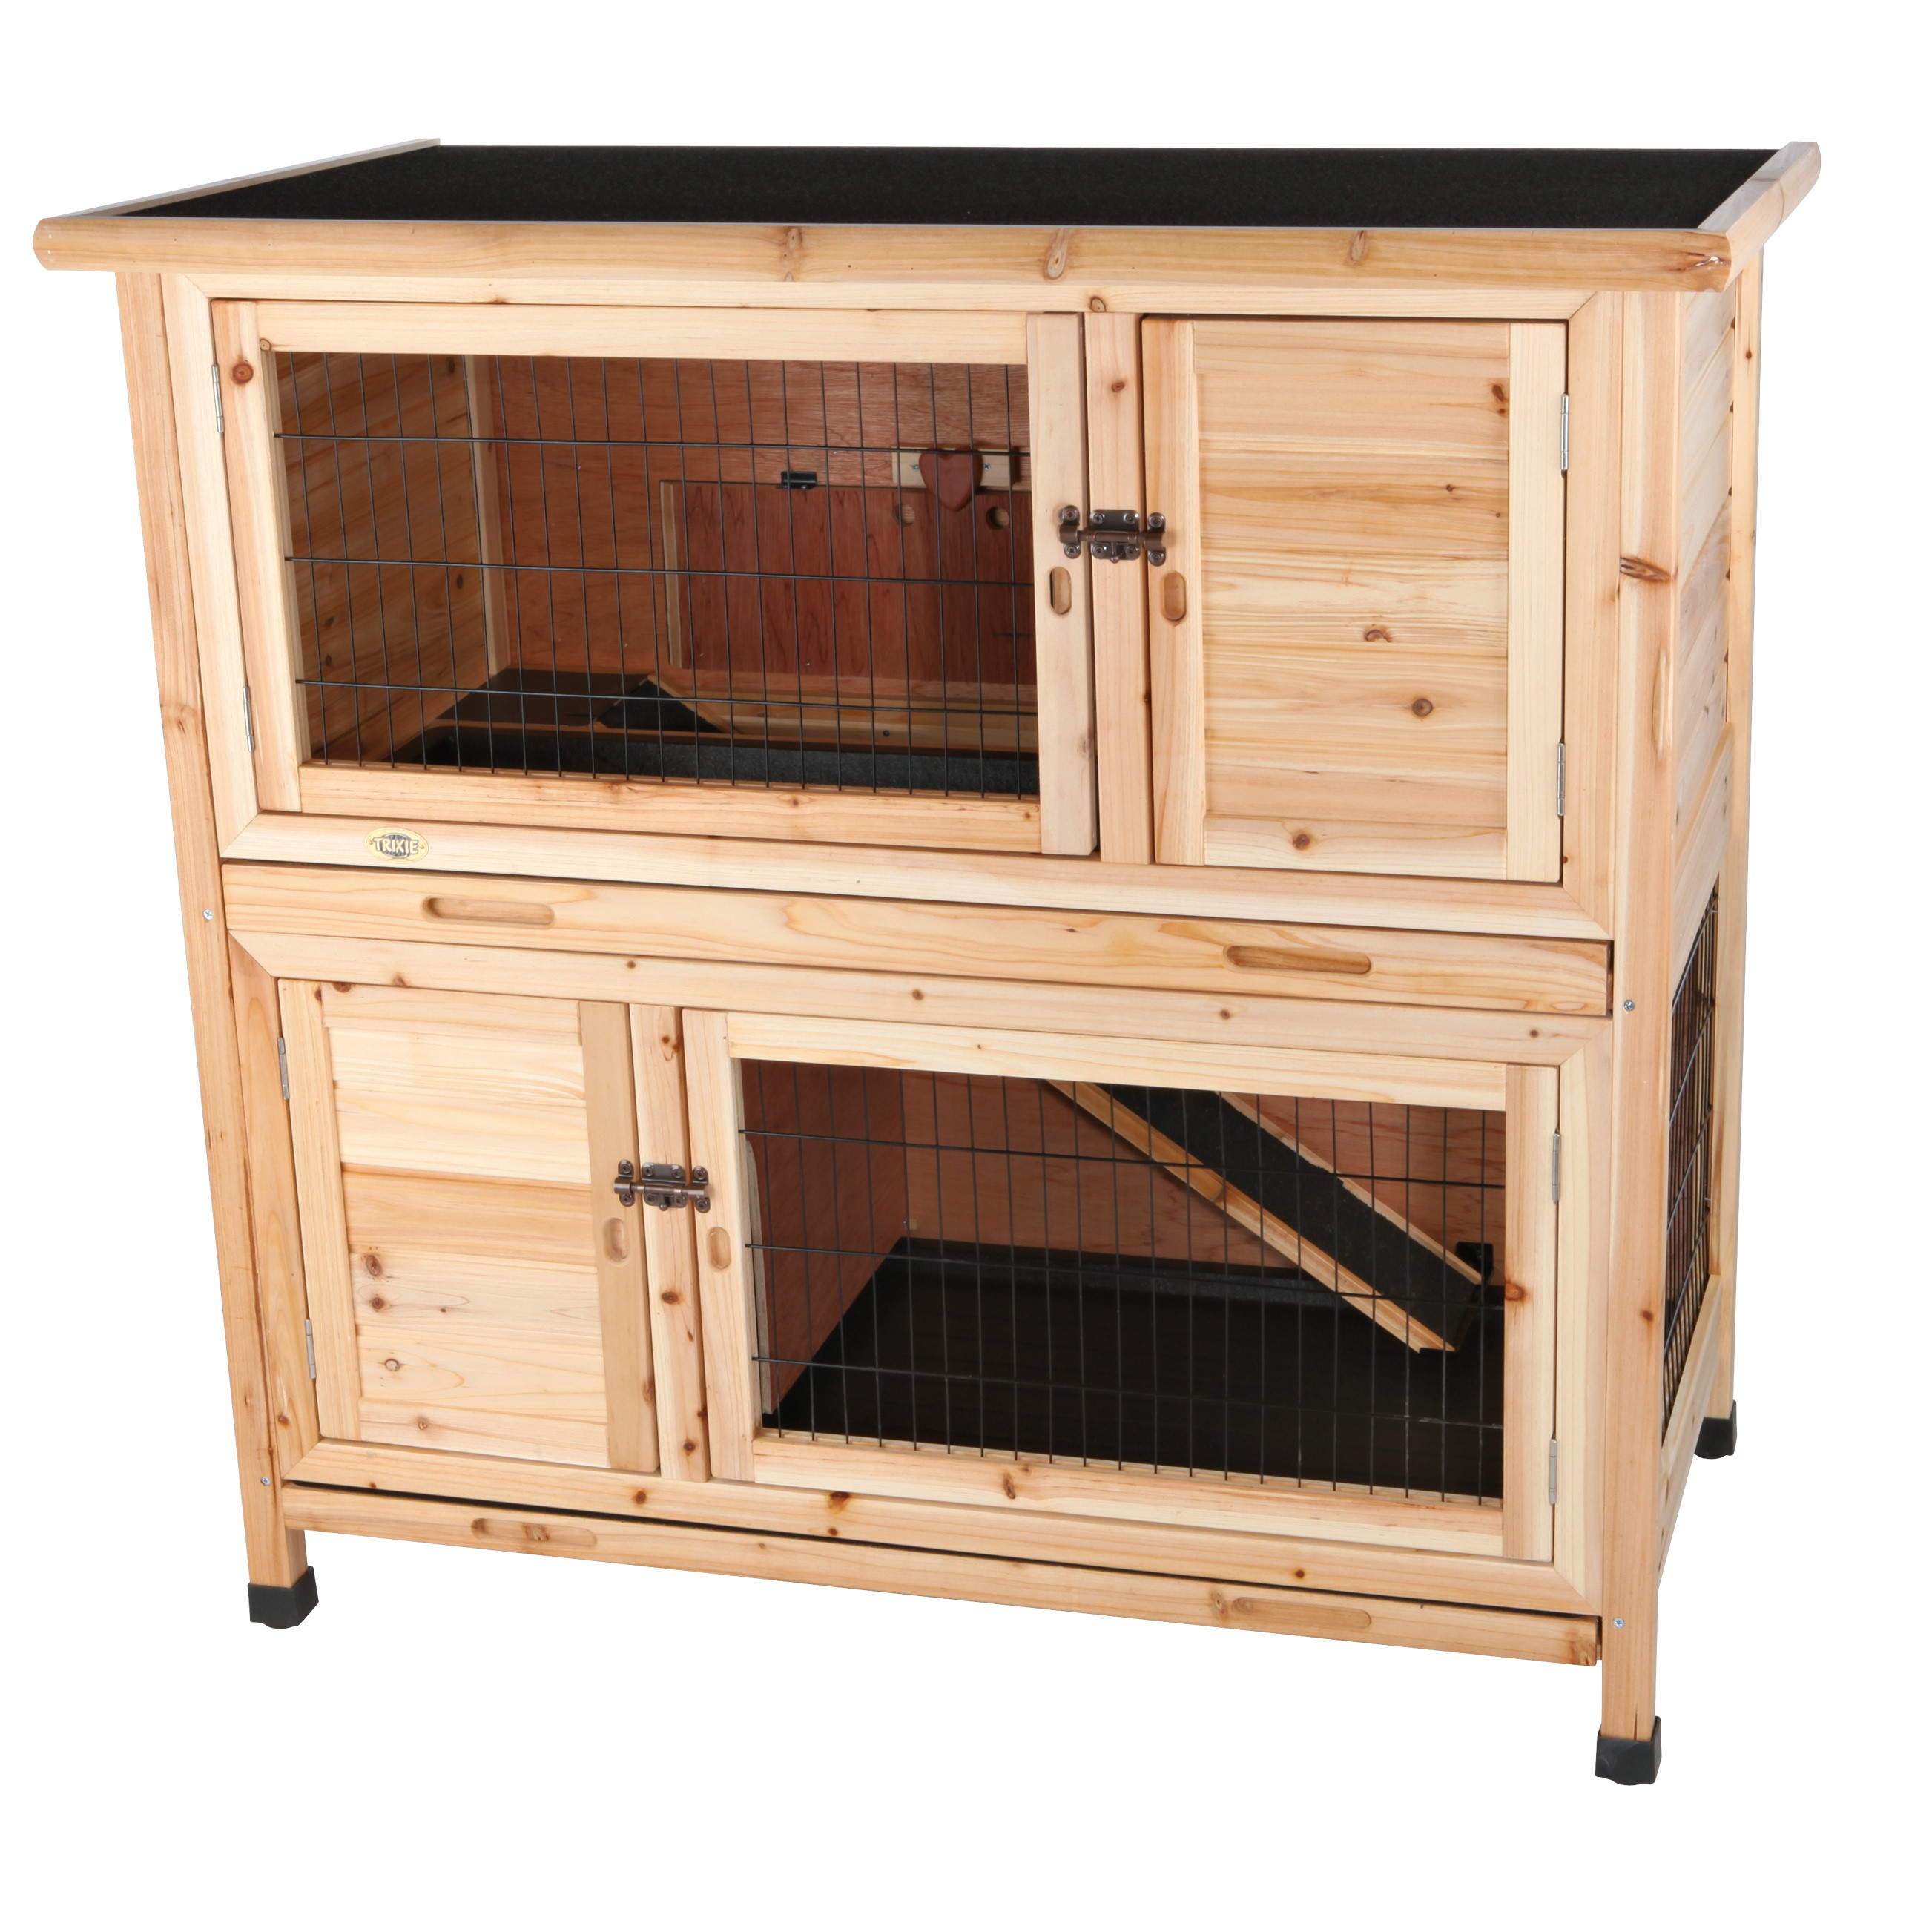 Trixie Pet 2-Story Rabbit Hutch (M) (Brown)